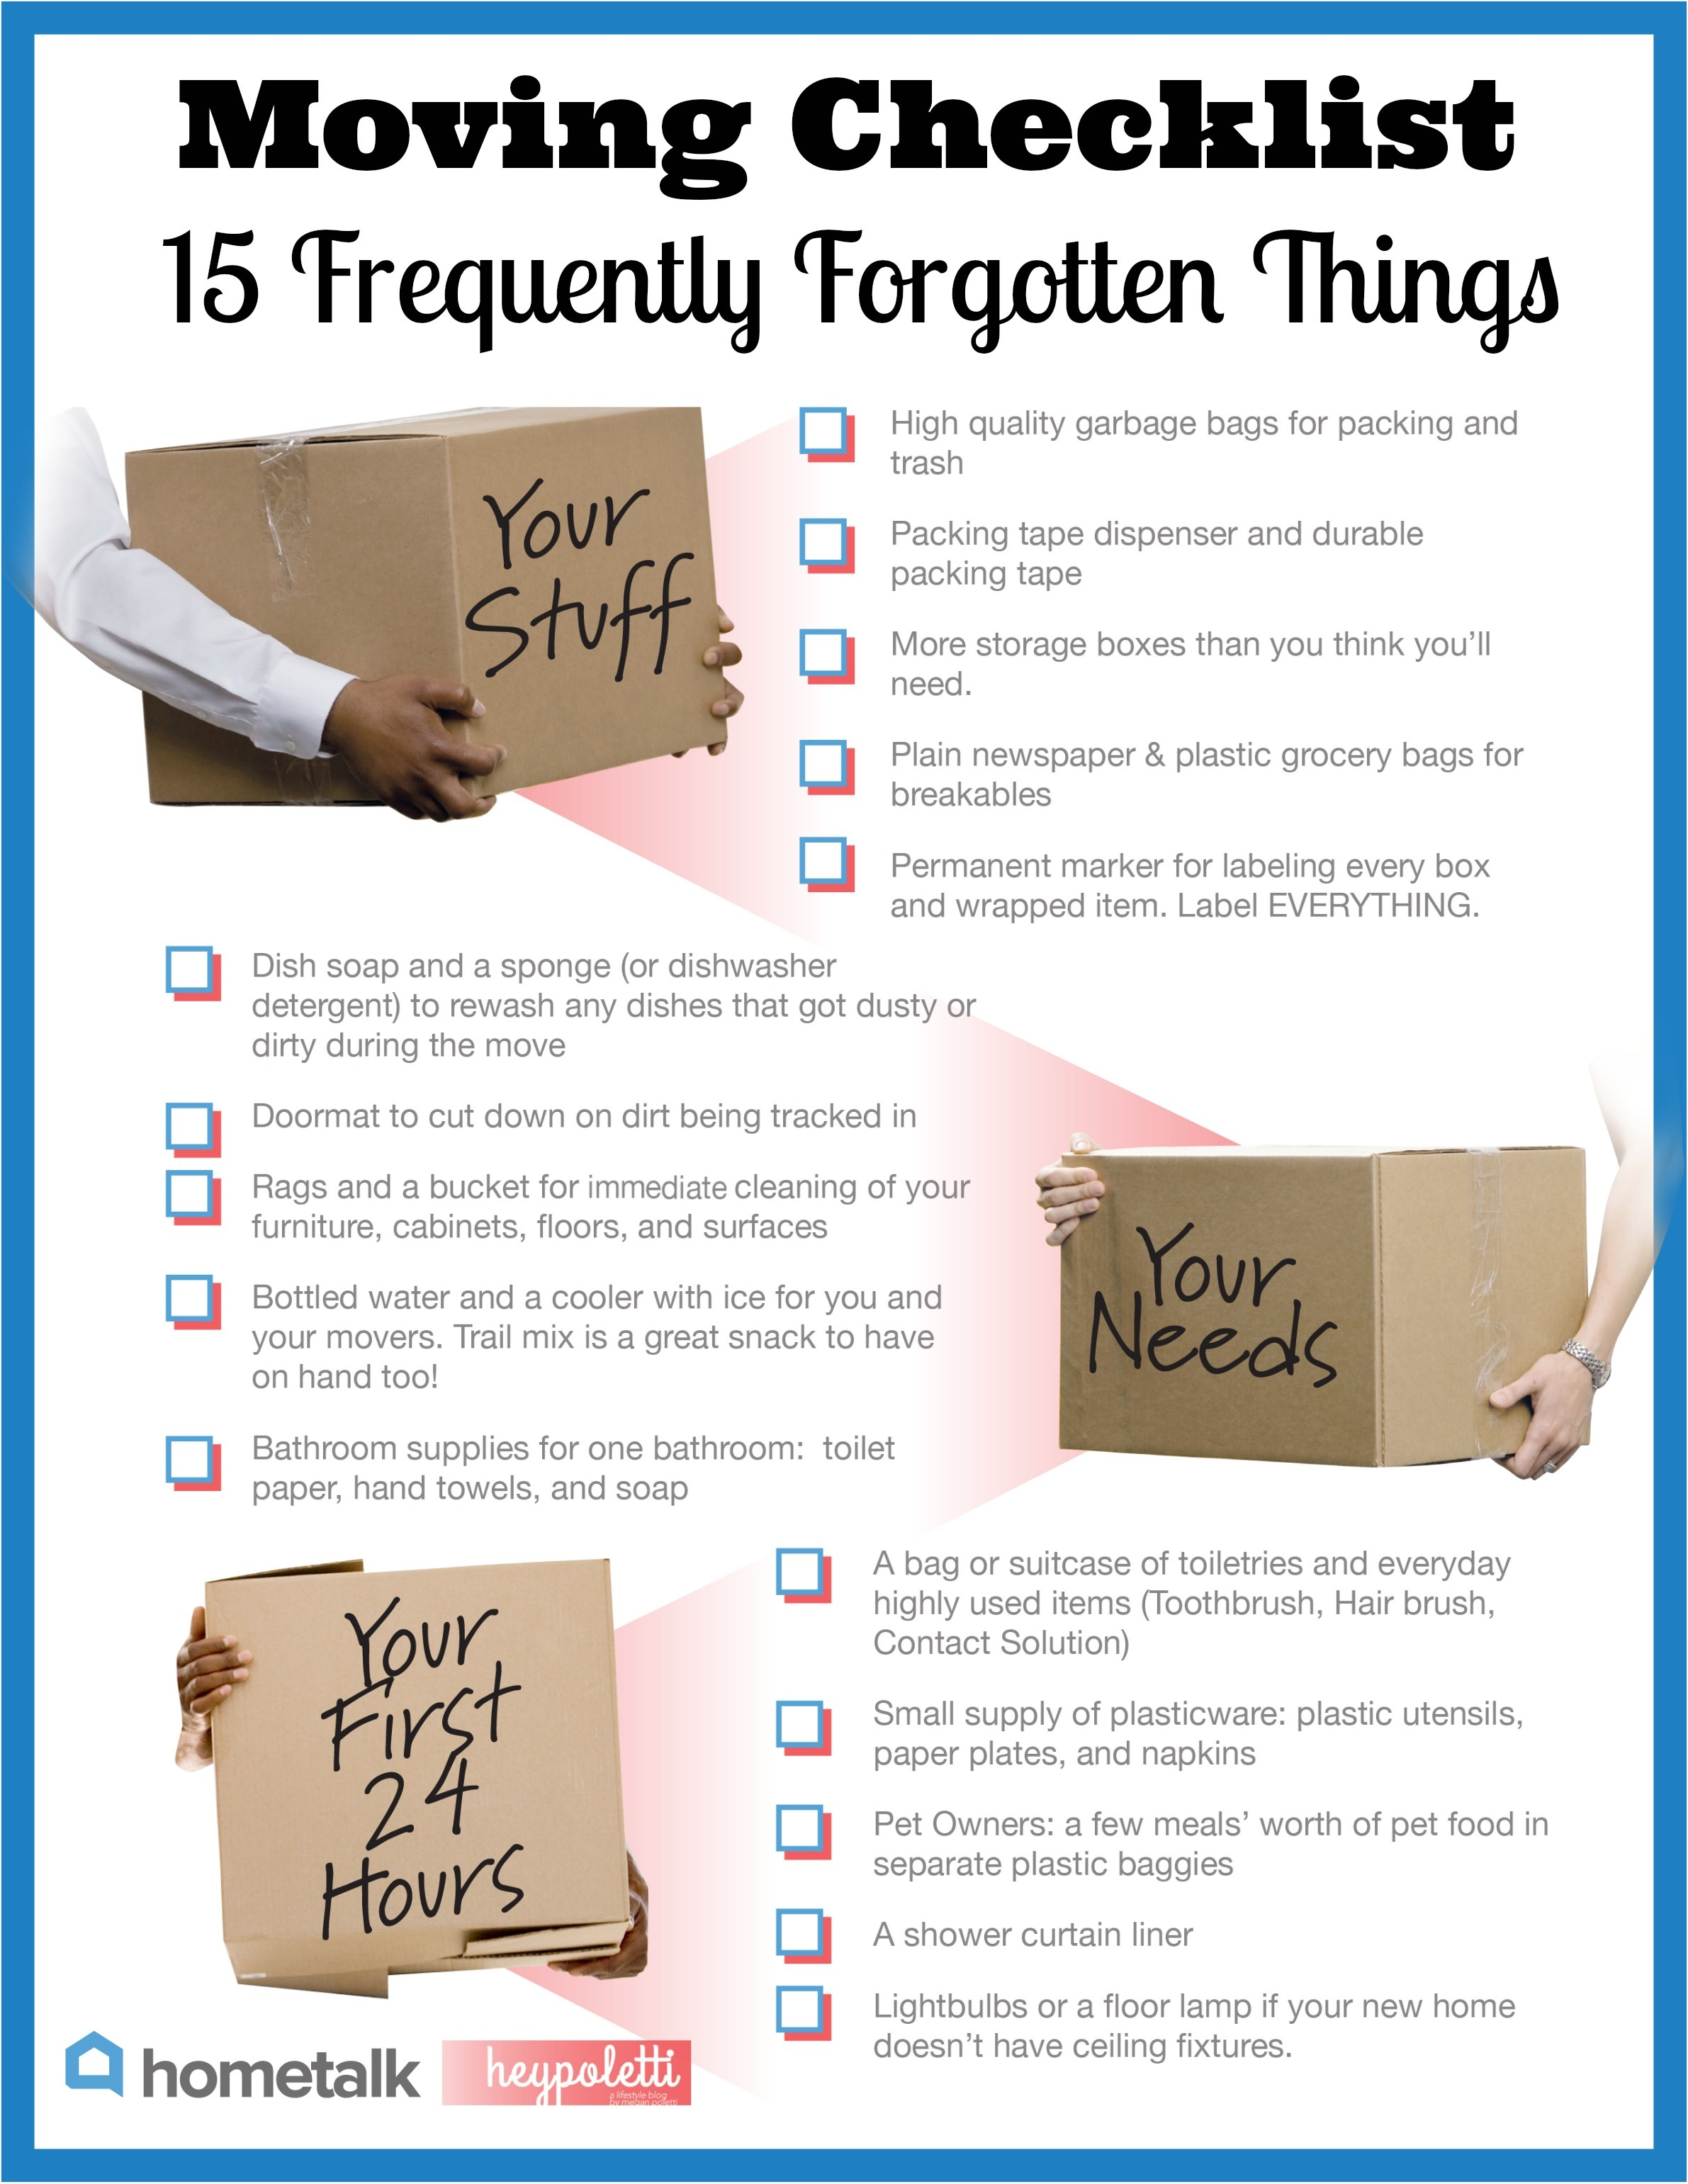 Moving Checklist: 15 Frequently Forgotten Things | via Hometalk and heypoletti.com